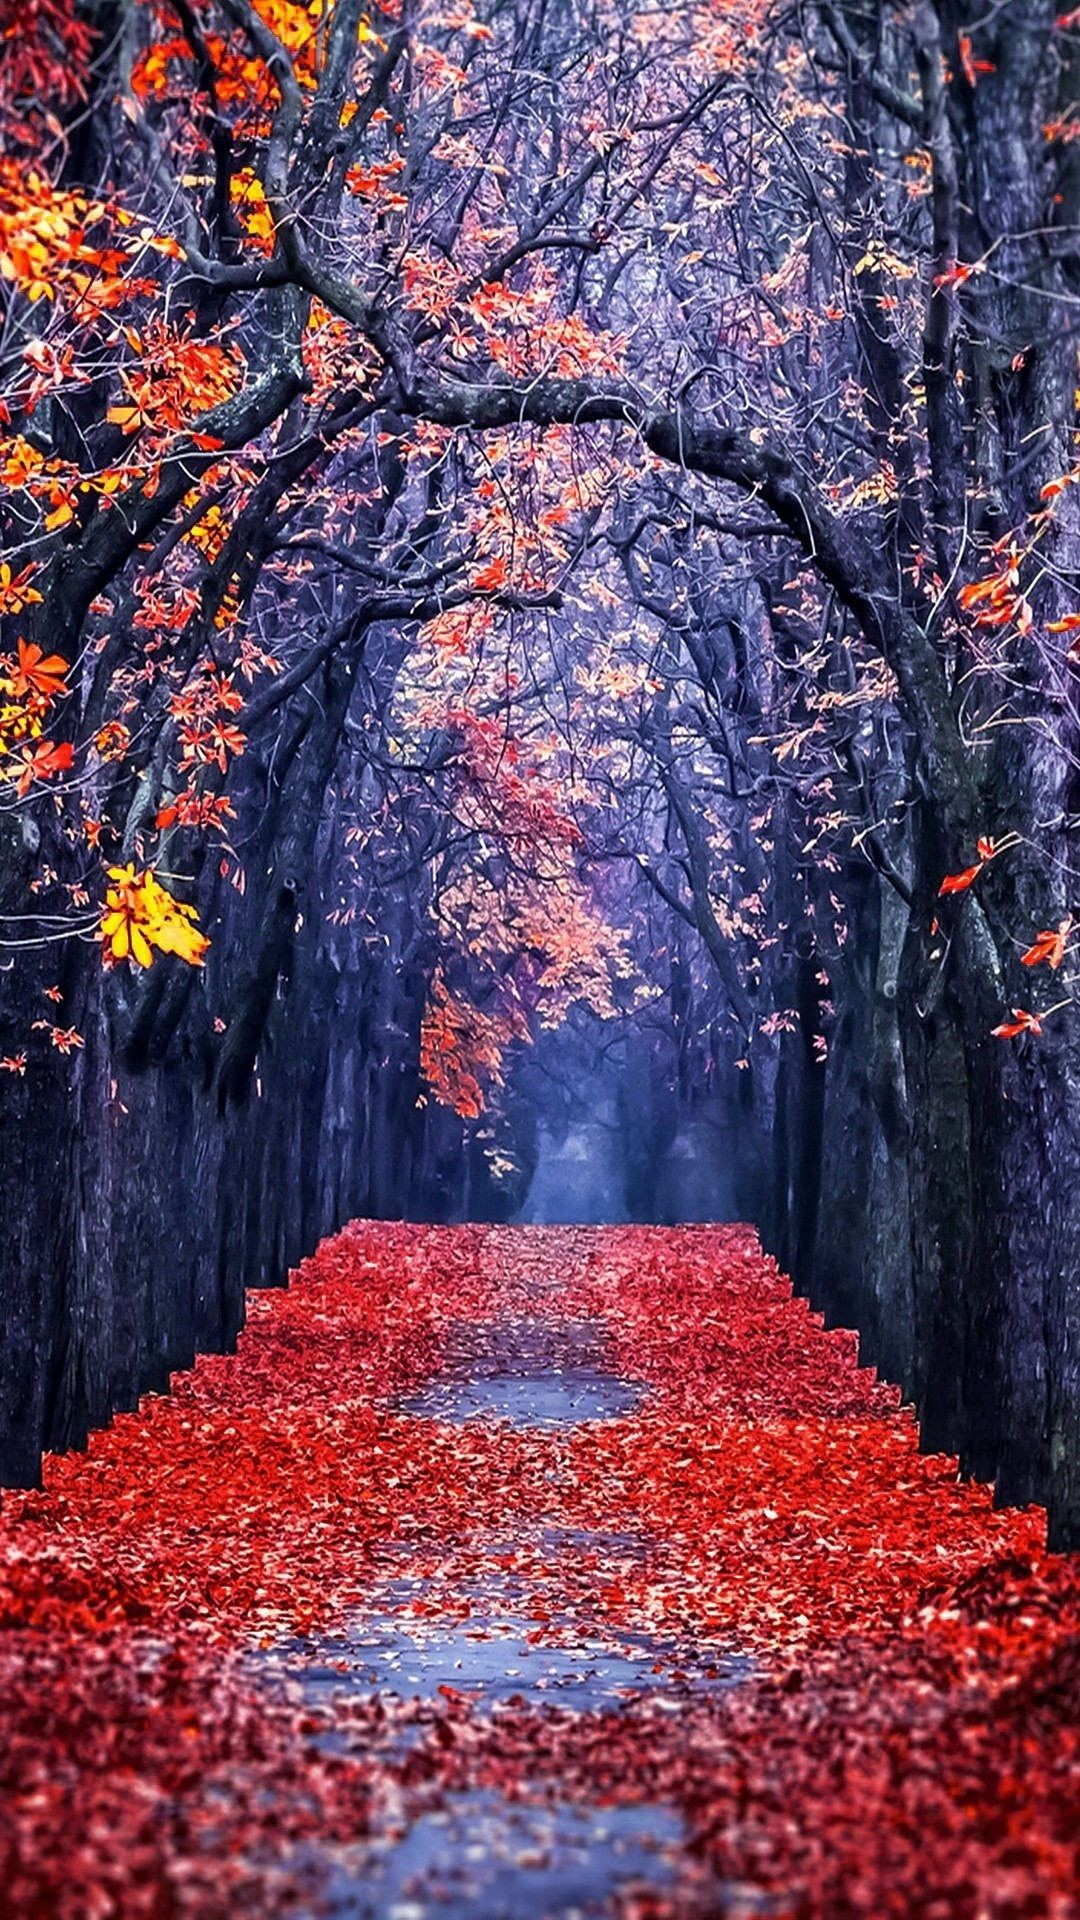 Gallery of autumn leaves in frost wallpapers and images wallpapers pictures